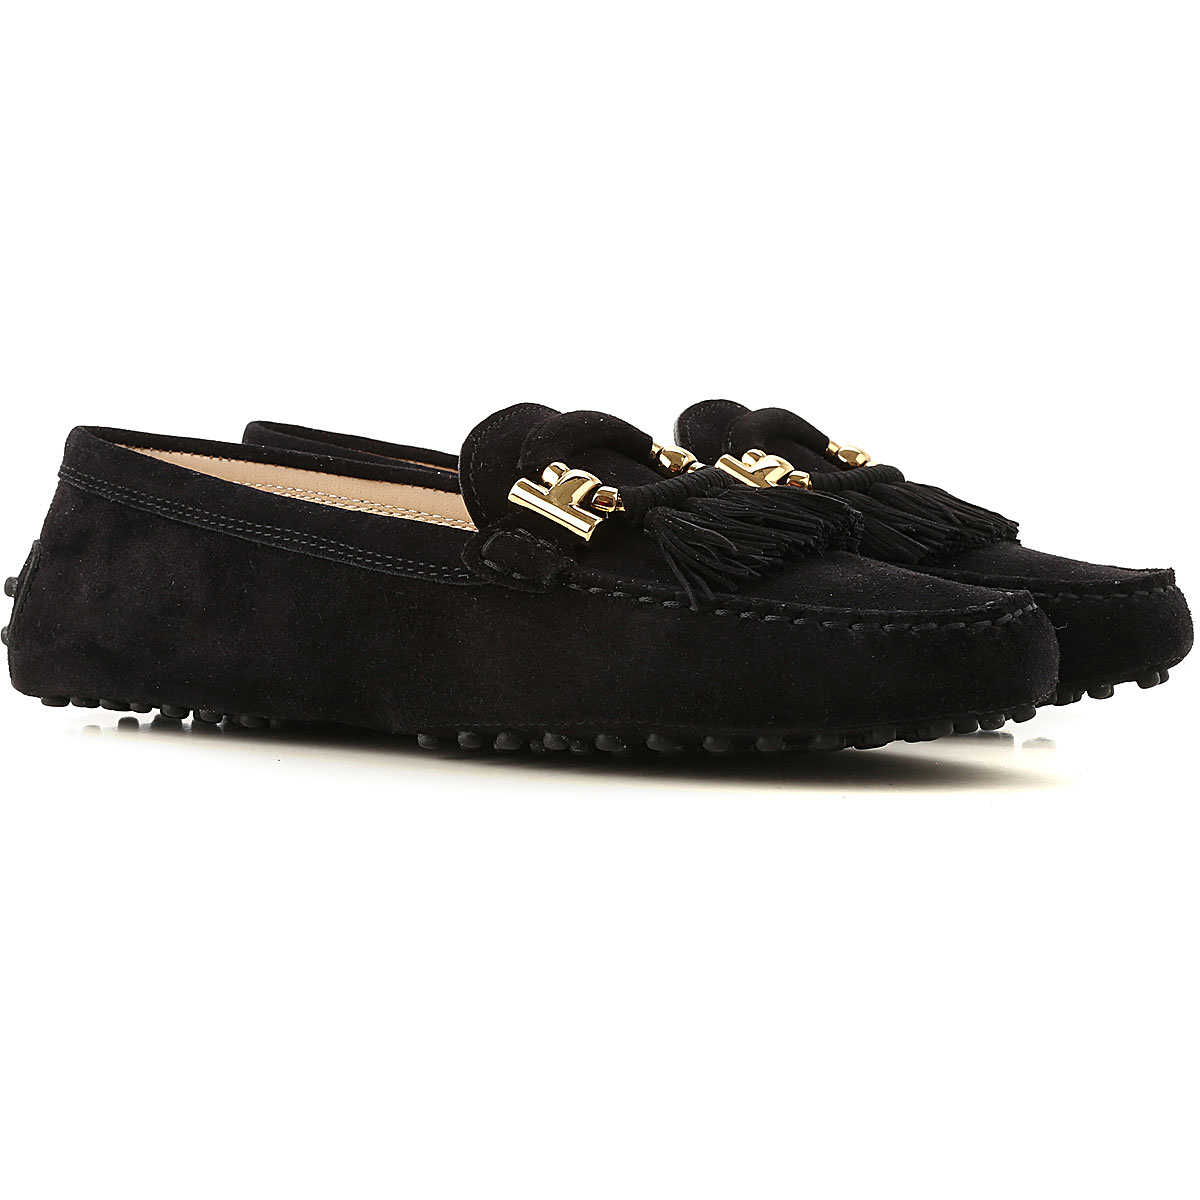 Tods Driver Loafer Shoes for Women On Sale Black DK - GOOFASH - Womens FLAT SHOES